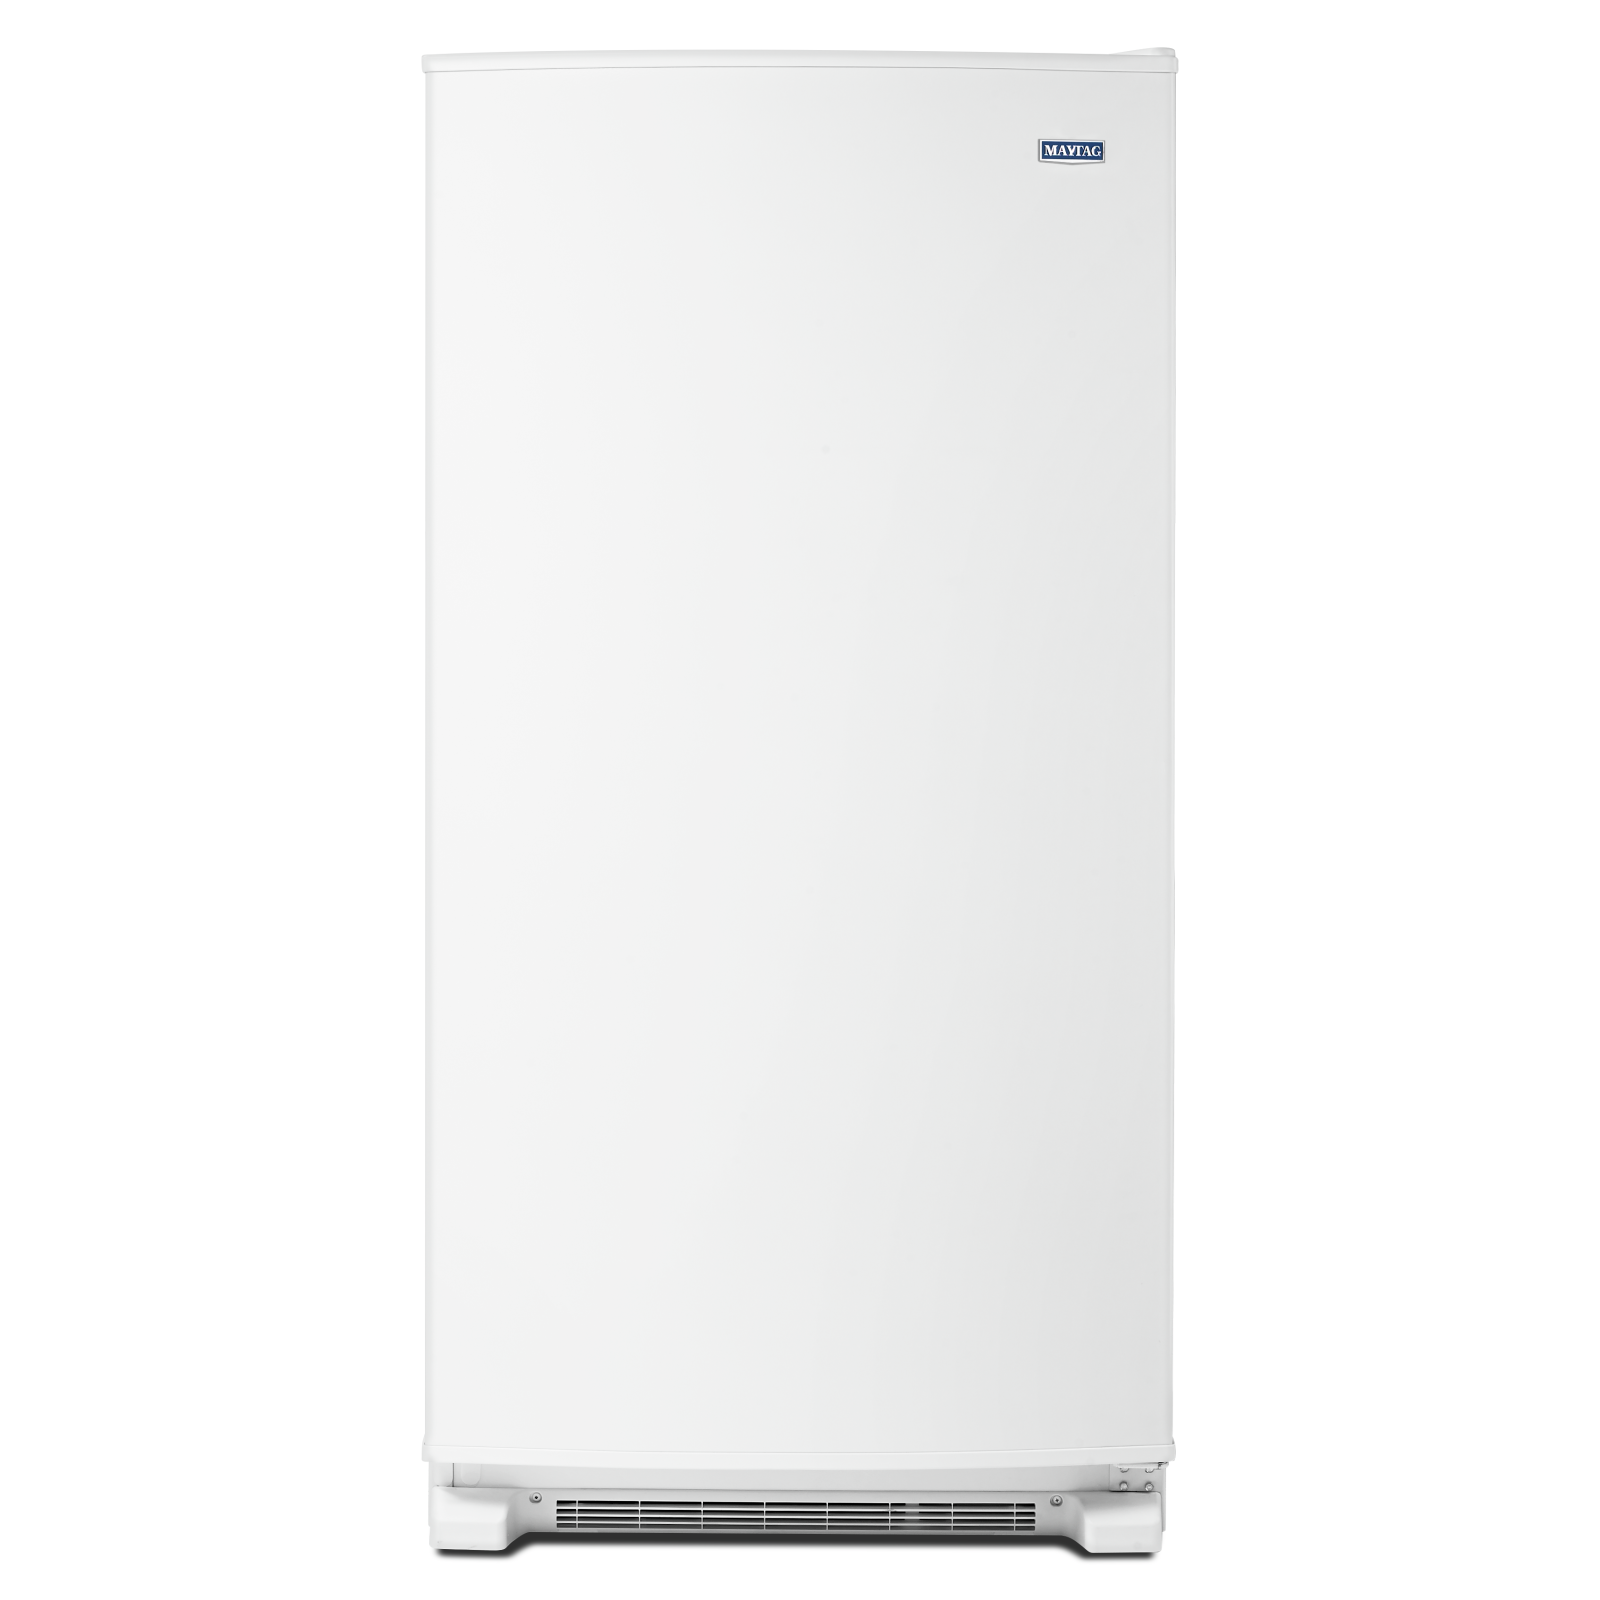 Maytag Freezer in White color showcased by Corbeil Electro Store